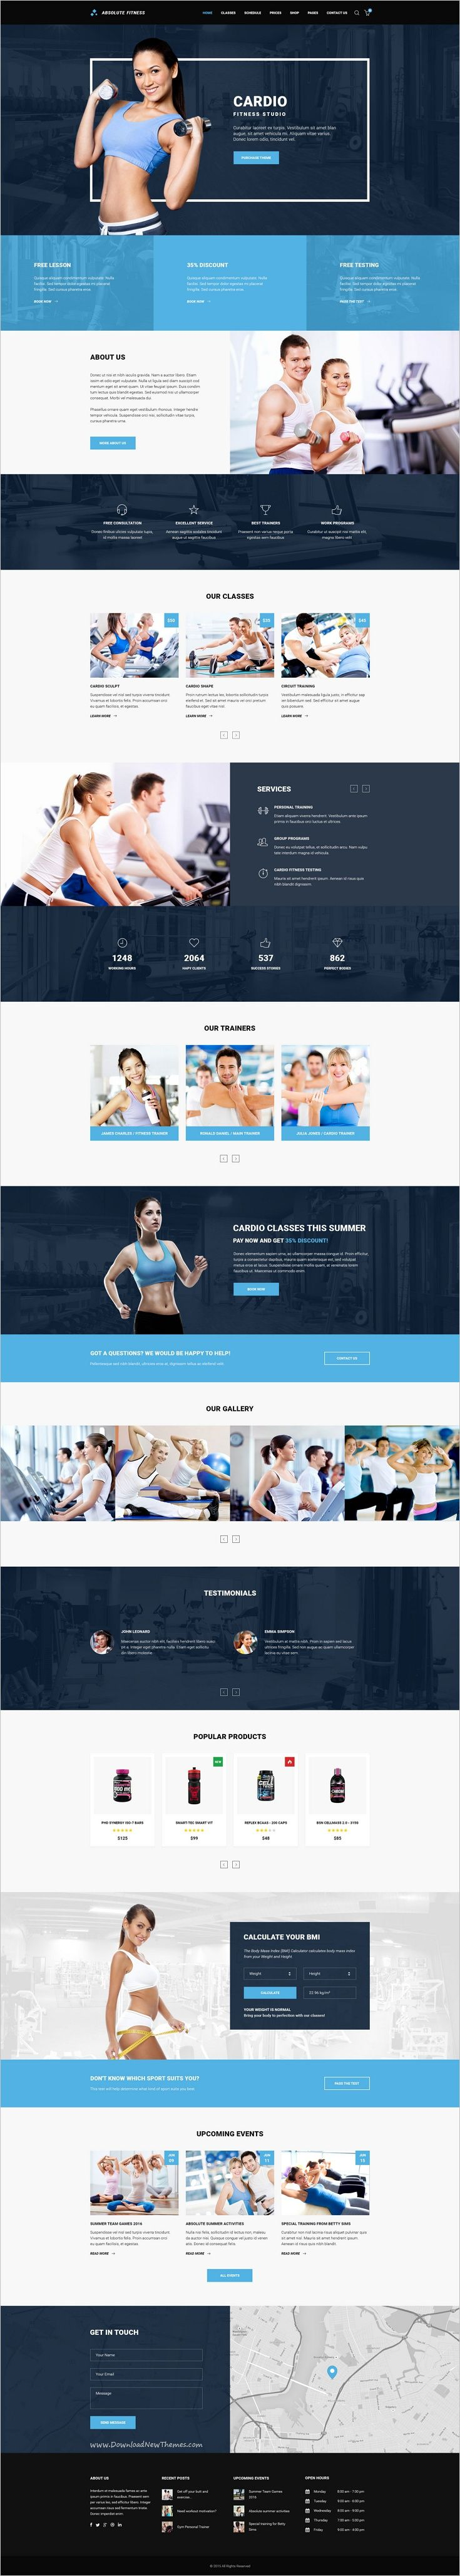 Absolute Fitness is a modern and functional #PSD #Template for #Fitness sports #clubs in different directions: GYM, Bodybuilding, Boxing, Dancing, Yoga, Personal Trainer website with 13 unique homepage layouts and 46 organized PSD pages download now➩ https://themeforest.net/item/absolute-fitness-psd-template/18599187?ref=Datasata